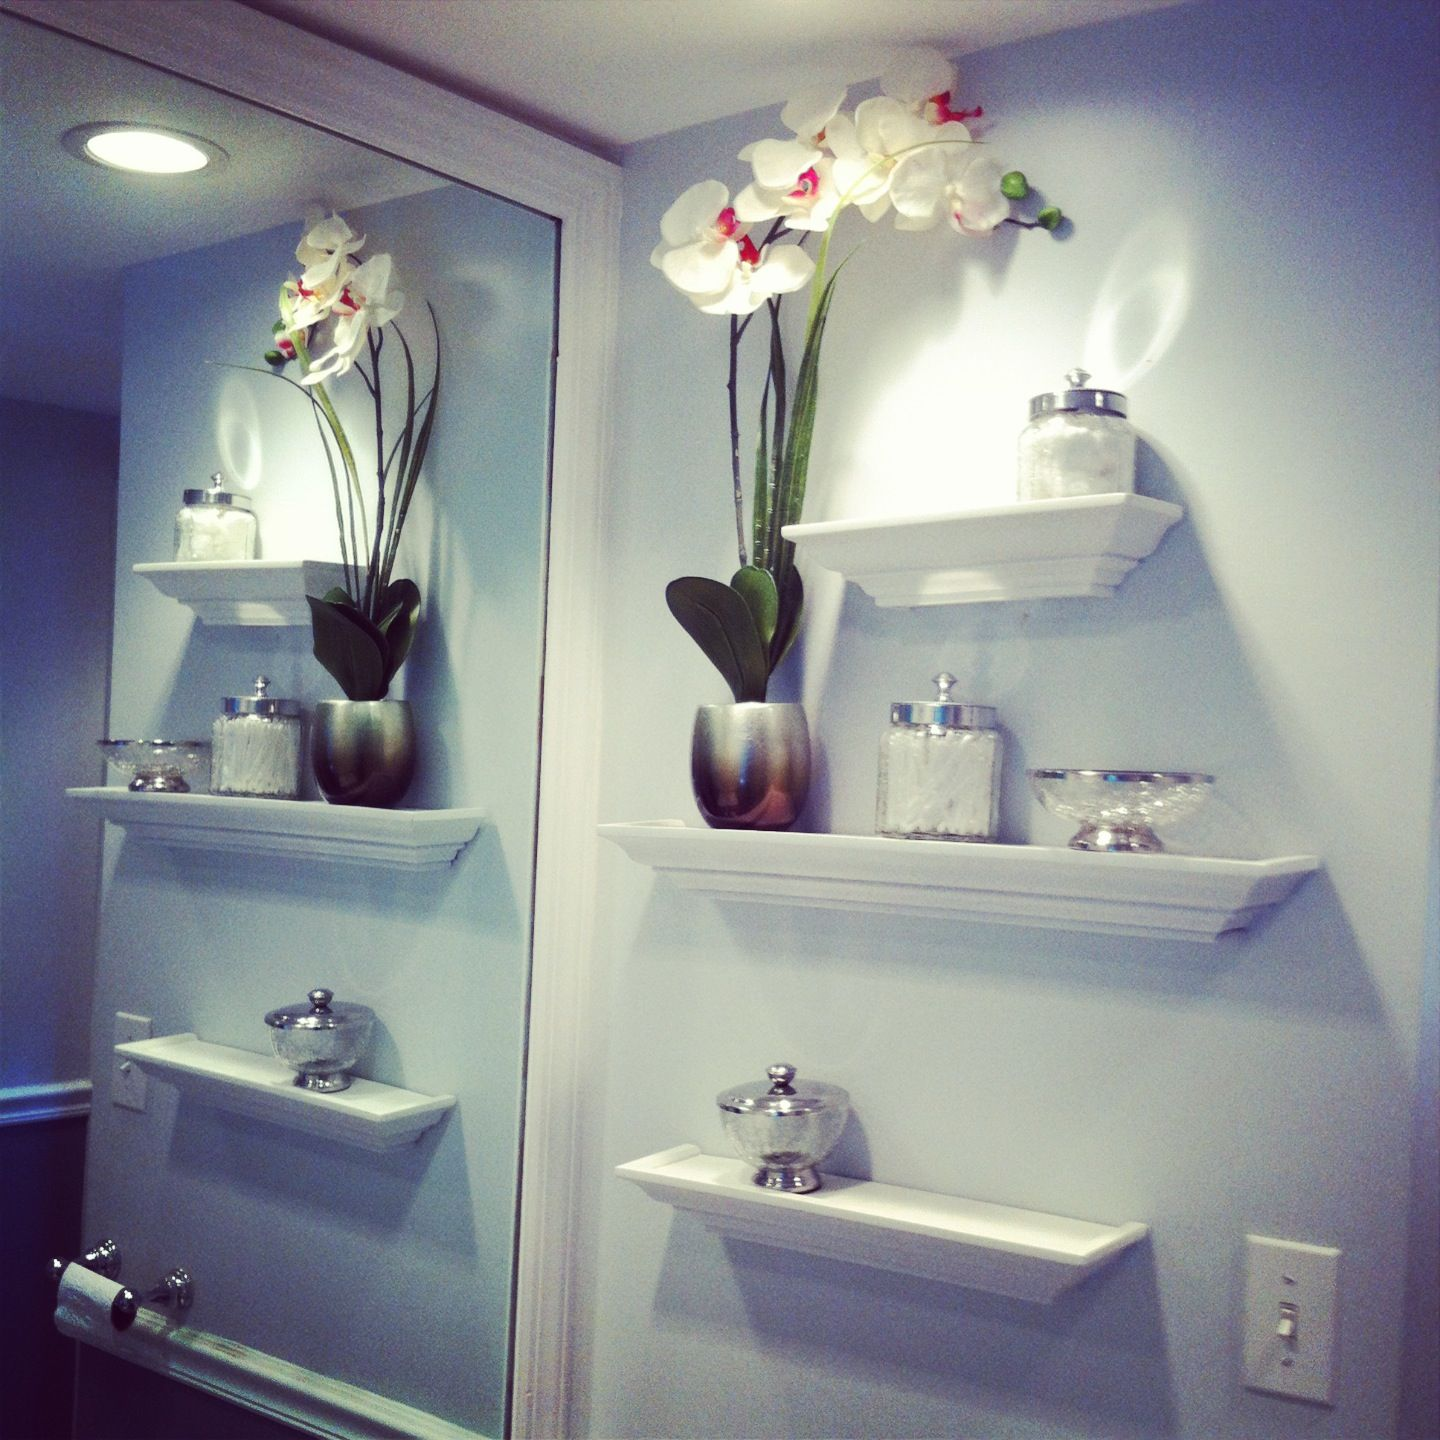 Bathroom Wall Decor, Floating Shelves, Glass Jars, Orchid